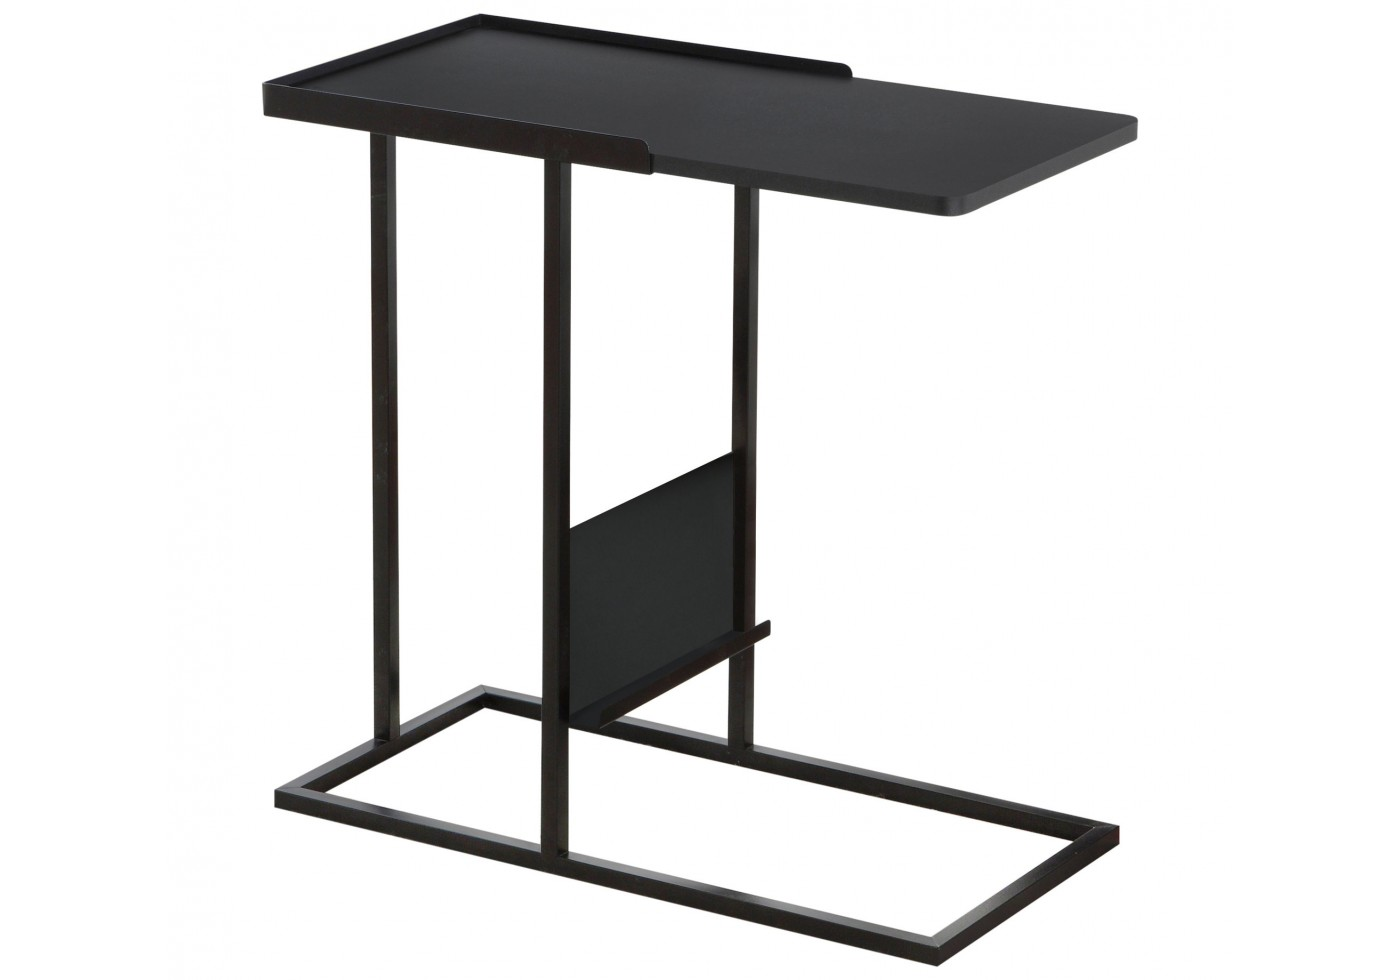 accent table black metal with magazine rack designer placemats and napkins modern outdoor oil rubbed bronze spray paint acrylic nightstand hampton bay furniture home goods